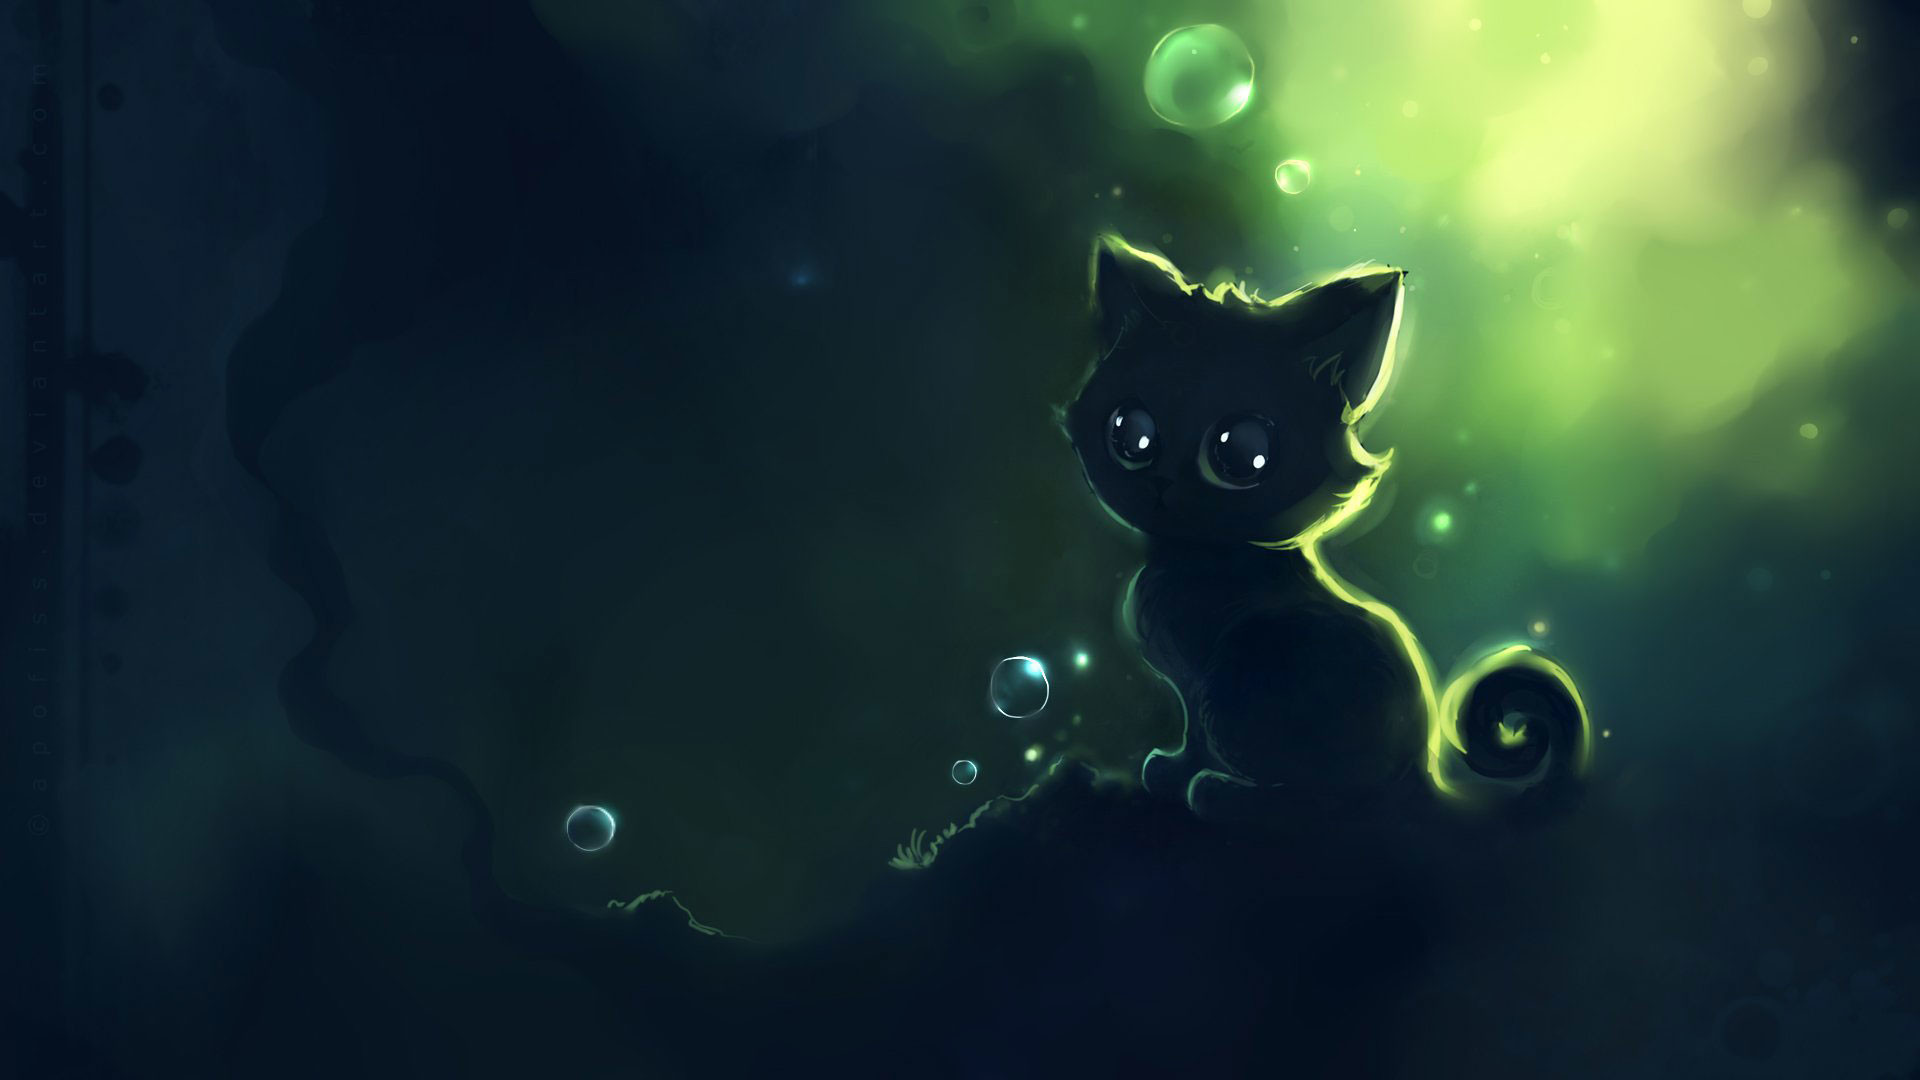 25+ Animated Cat Screensaver Background